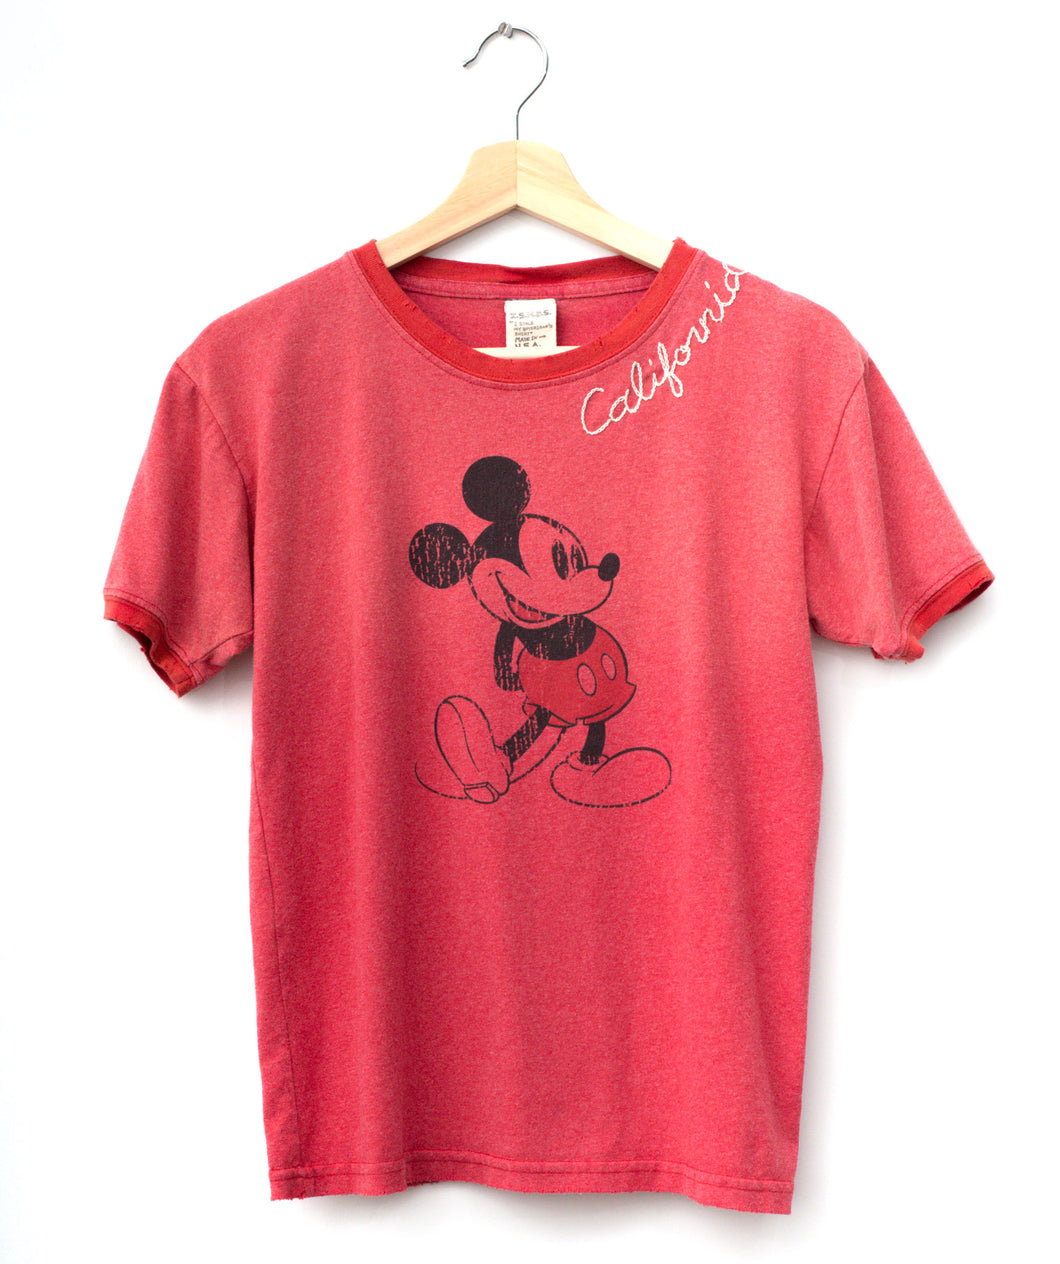 Vintage Mickey & California Embroidery Tee - Vintage Red